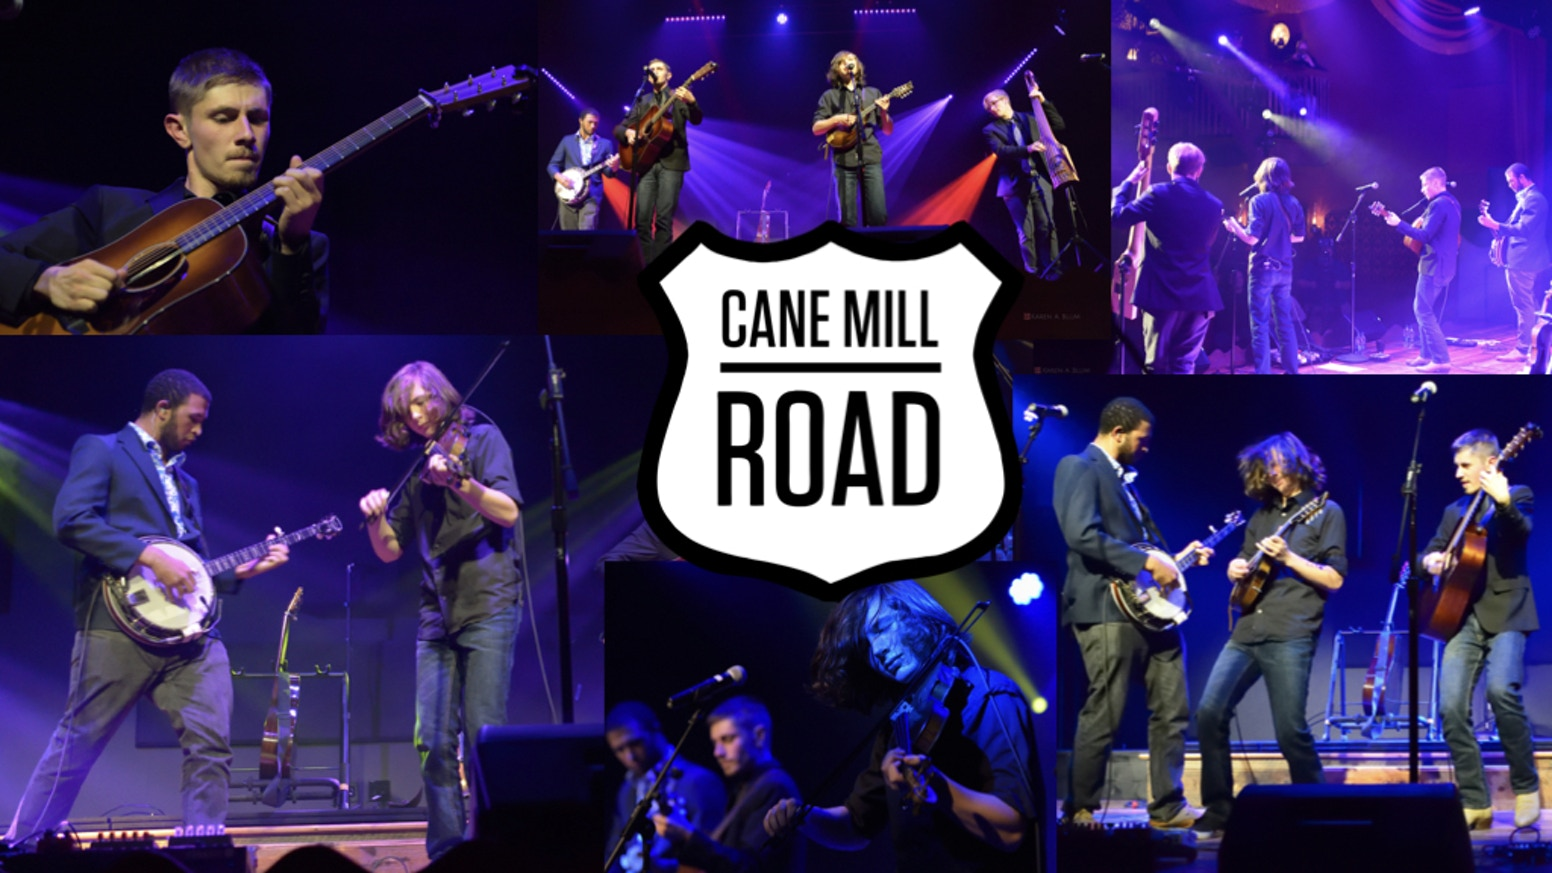 Cane Mill Road LIVE CD by William Purcell — Kickstarter